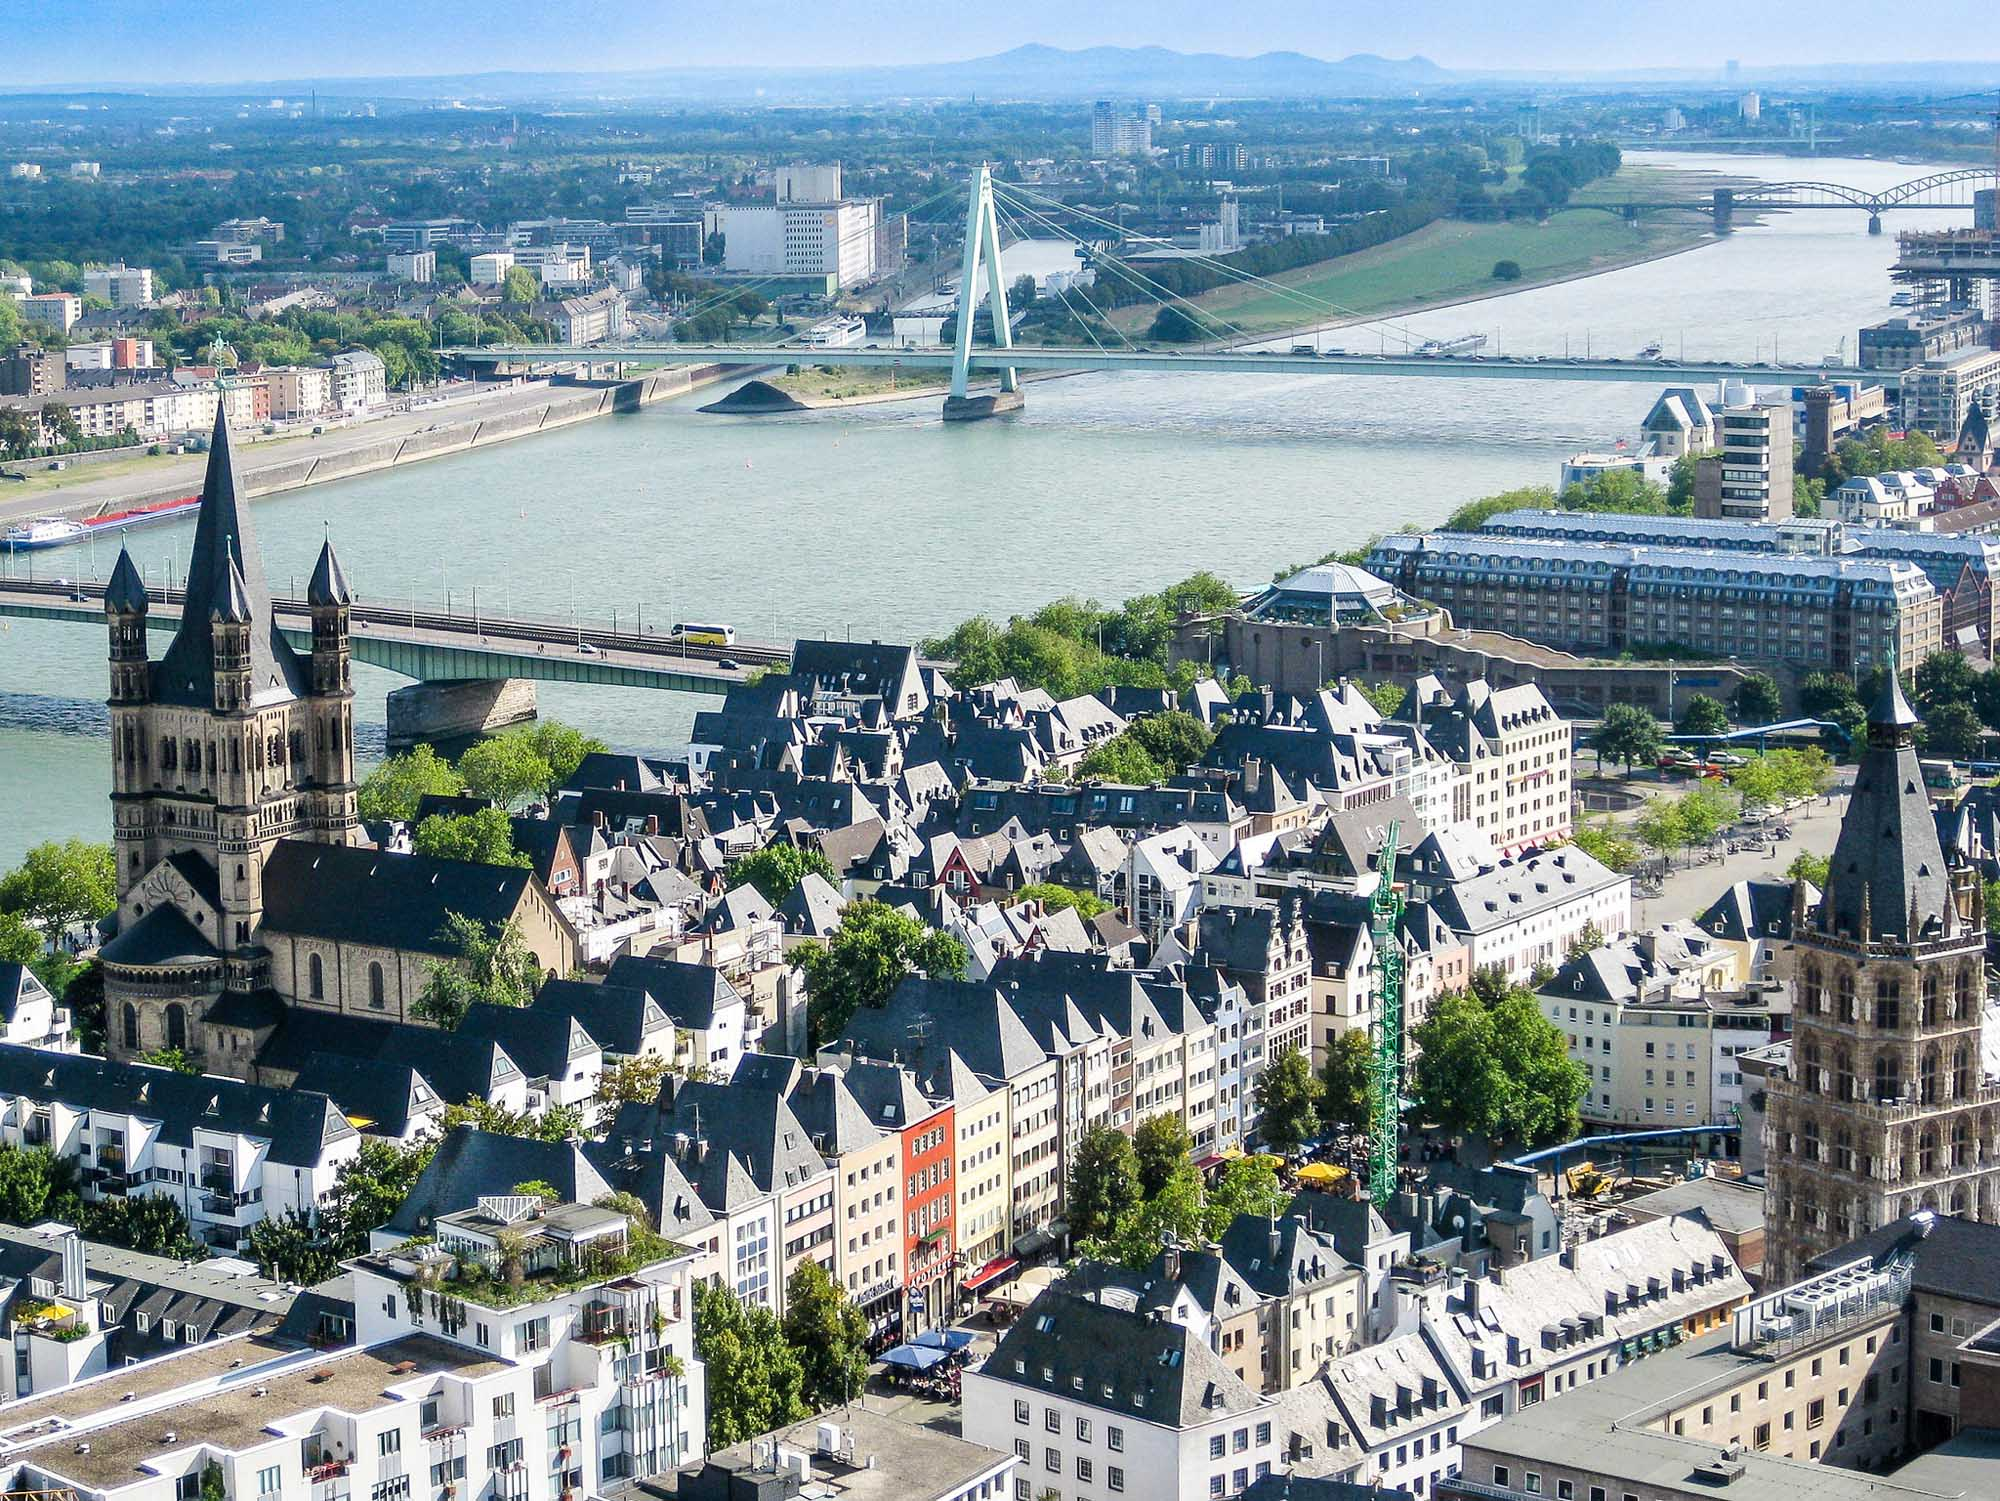 The city of Cologne, Germany. See it during a river cruise on the Rhine.